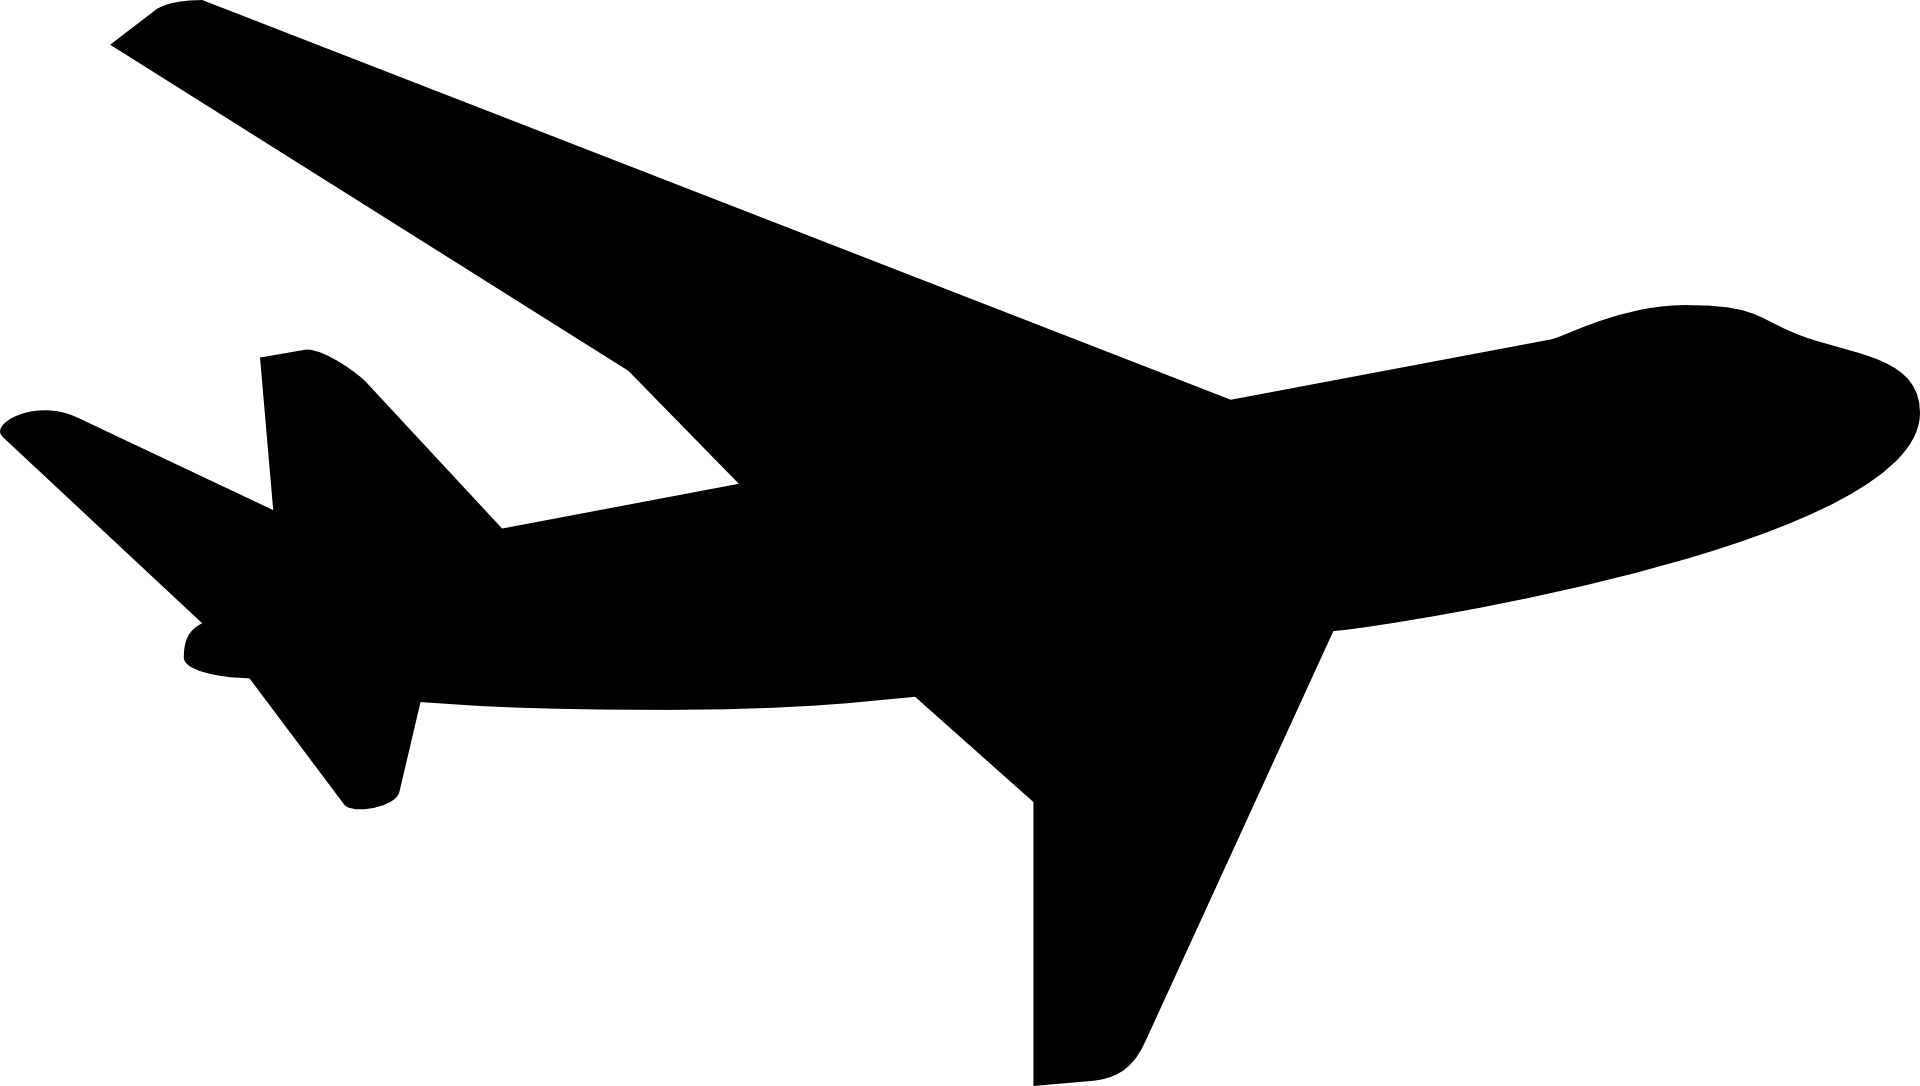 Airplane Silhouette Aircraft Clip art.